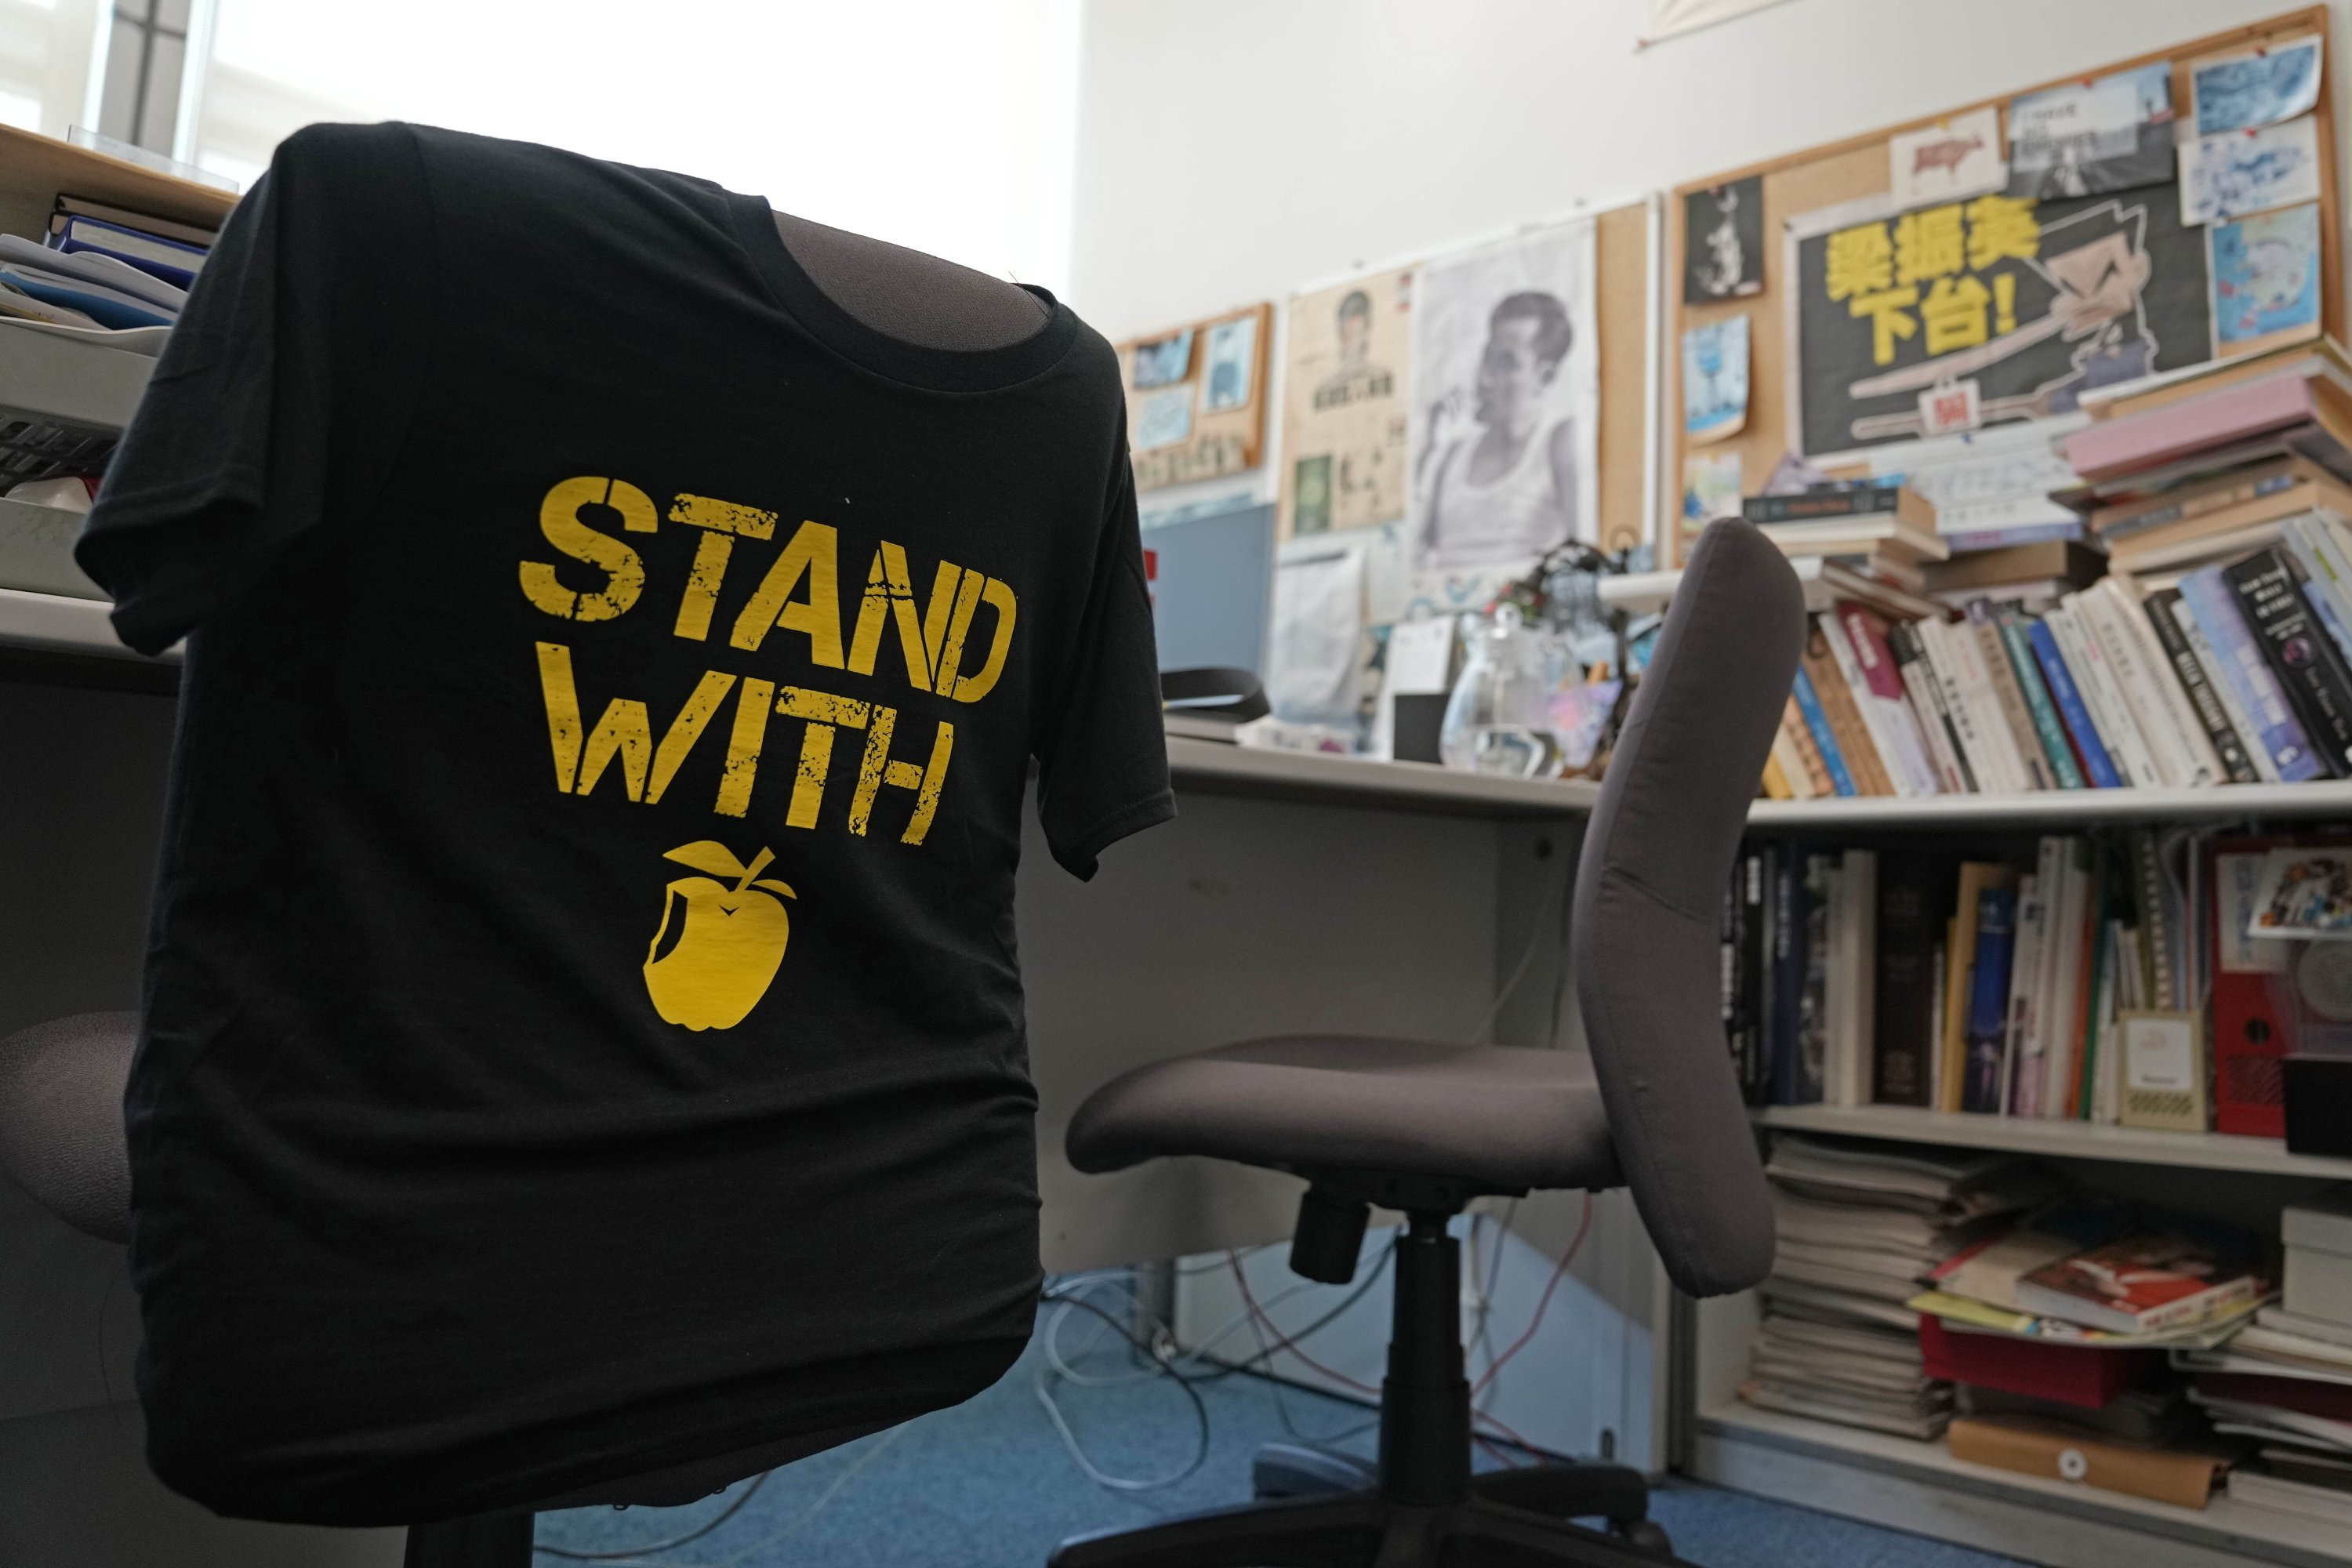 A 'Stand with Apple Daily' t-shirt hangs on a chair in the office of Chan Pui-man, associate publisher of Apple Daily newspaper, at Apple Daily headquarters in Hong Kong, China, June 17, 2021. (AP Photo)